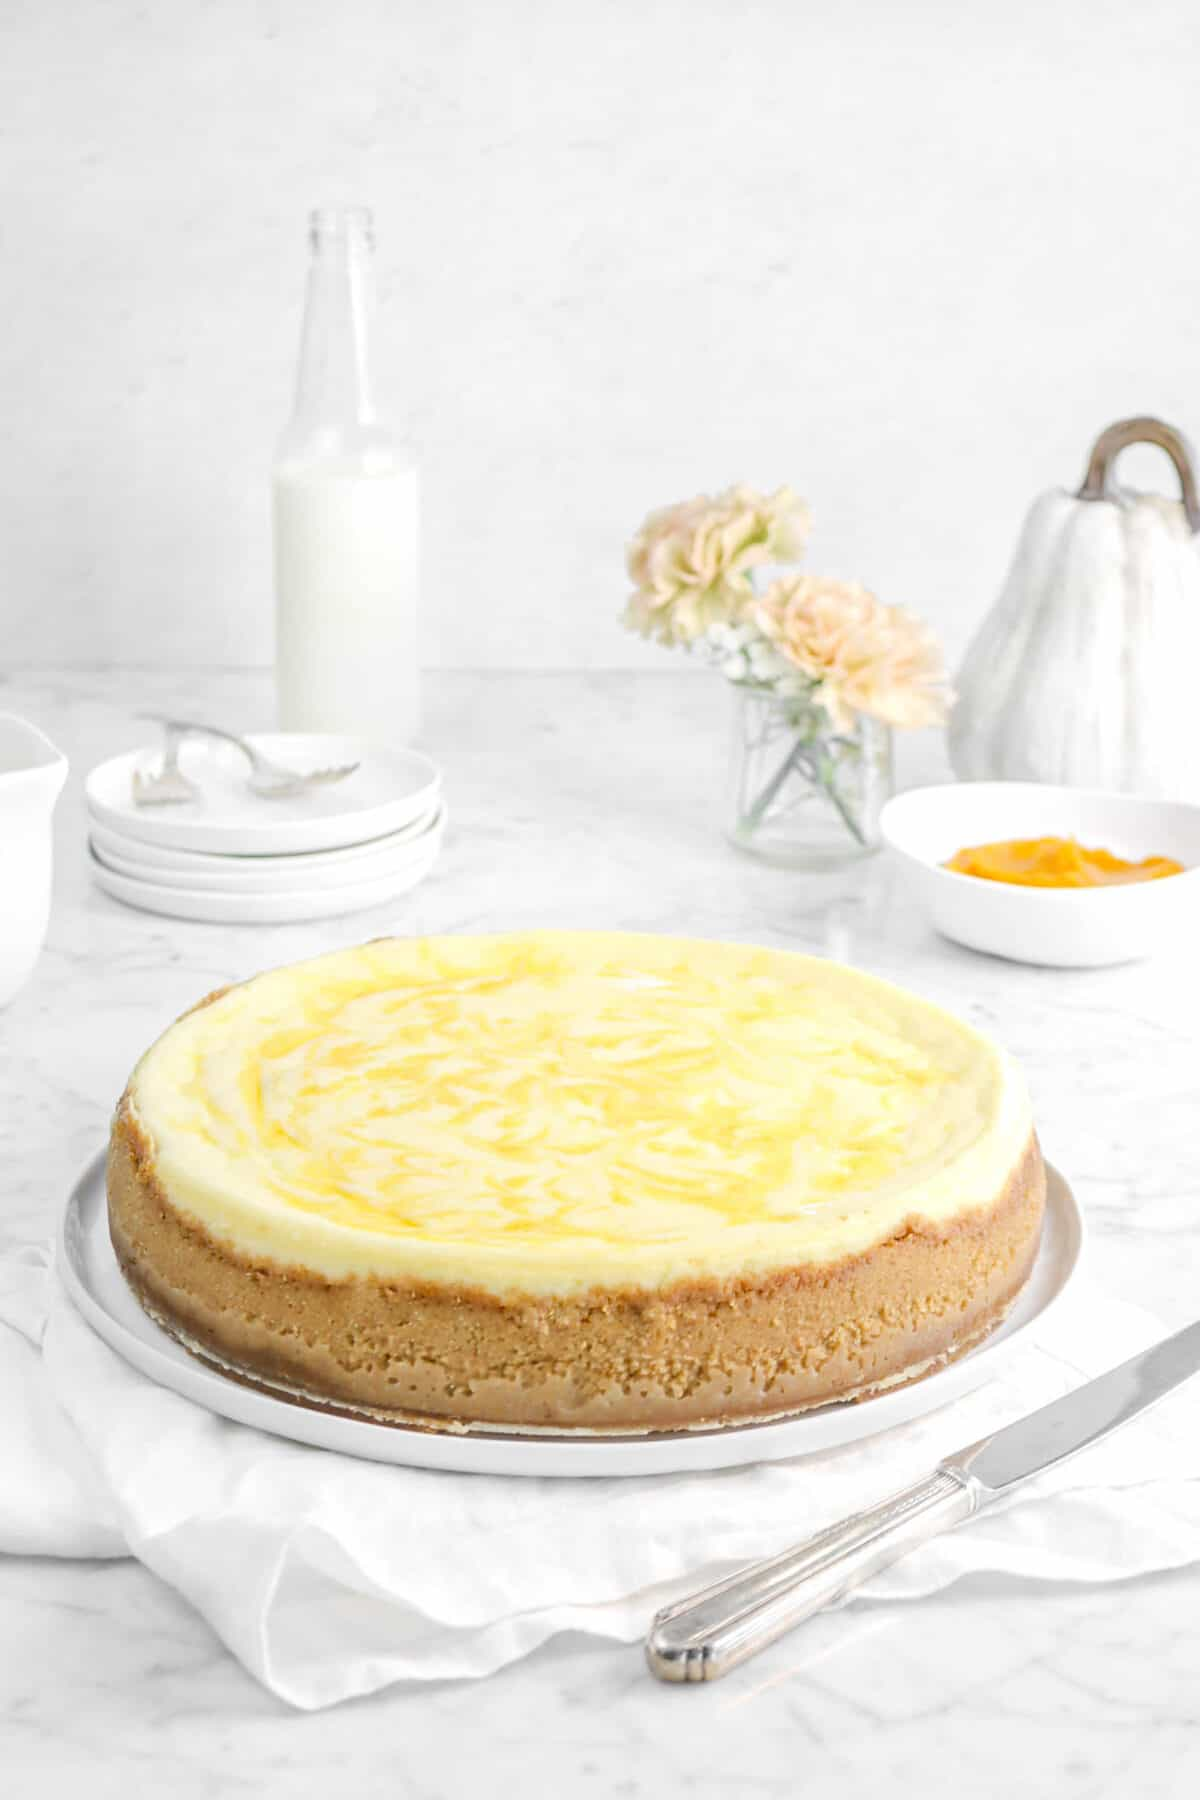 cheesecake on a white plate and napkin with flowers, pumpkin, and plates behind